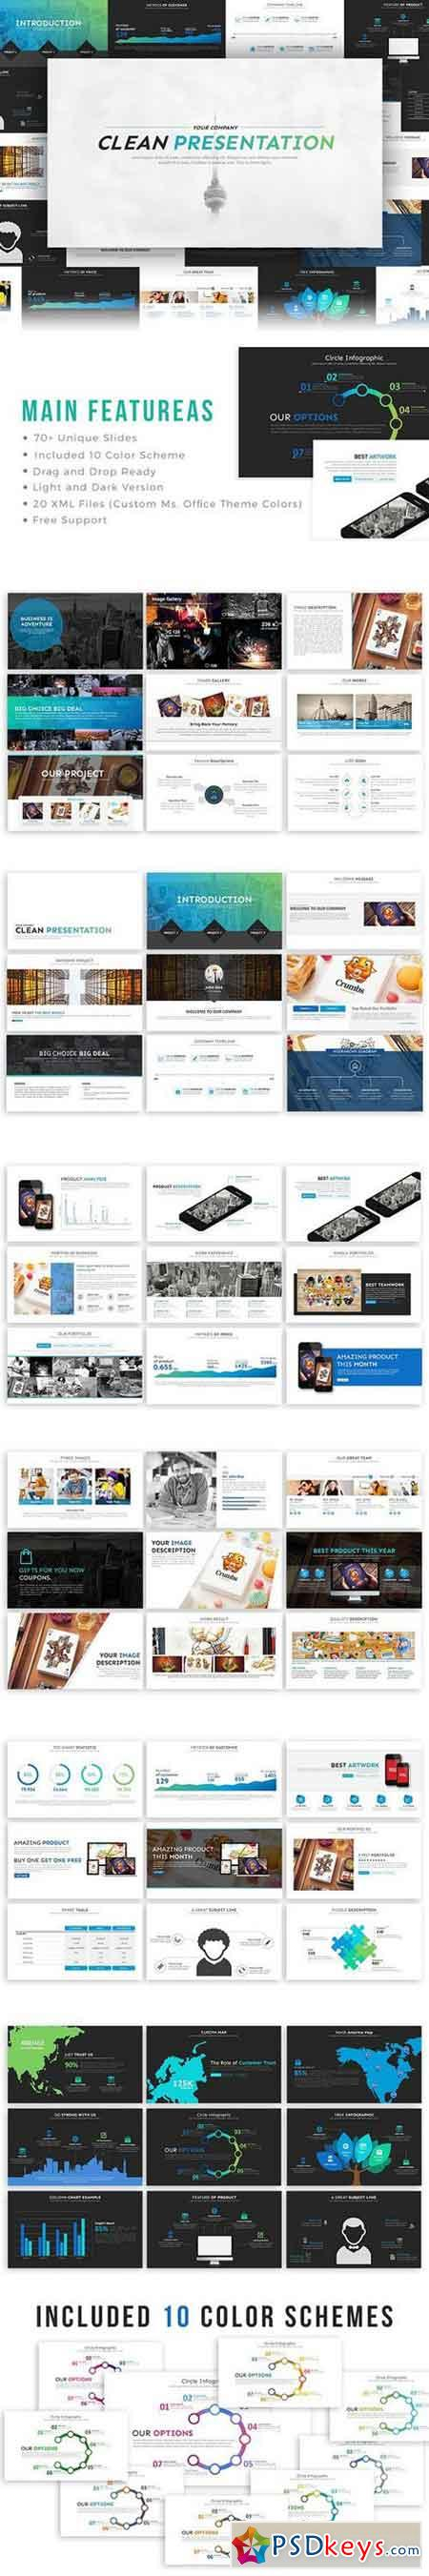 Clean PowerPoint Template 996842